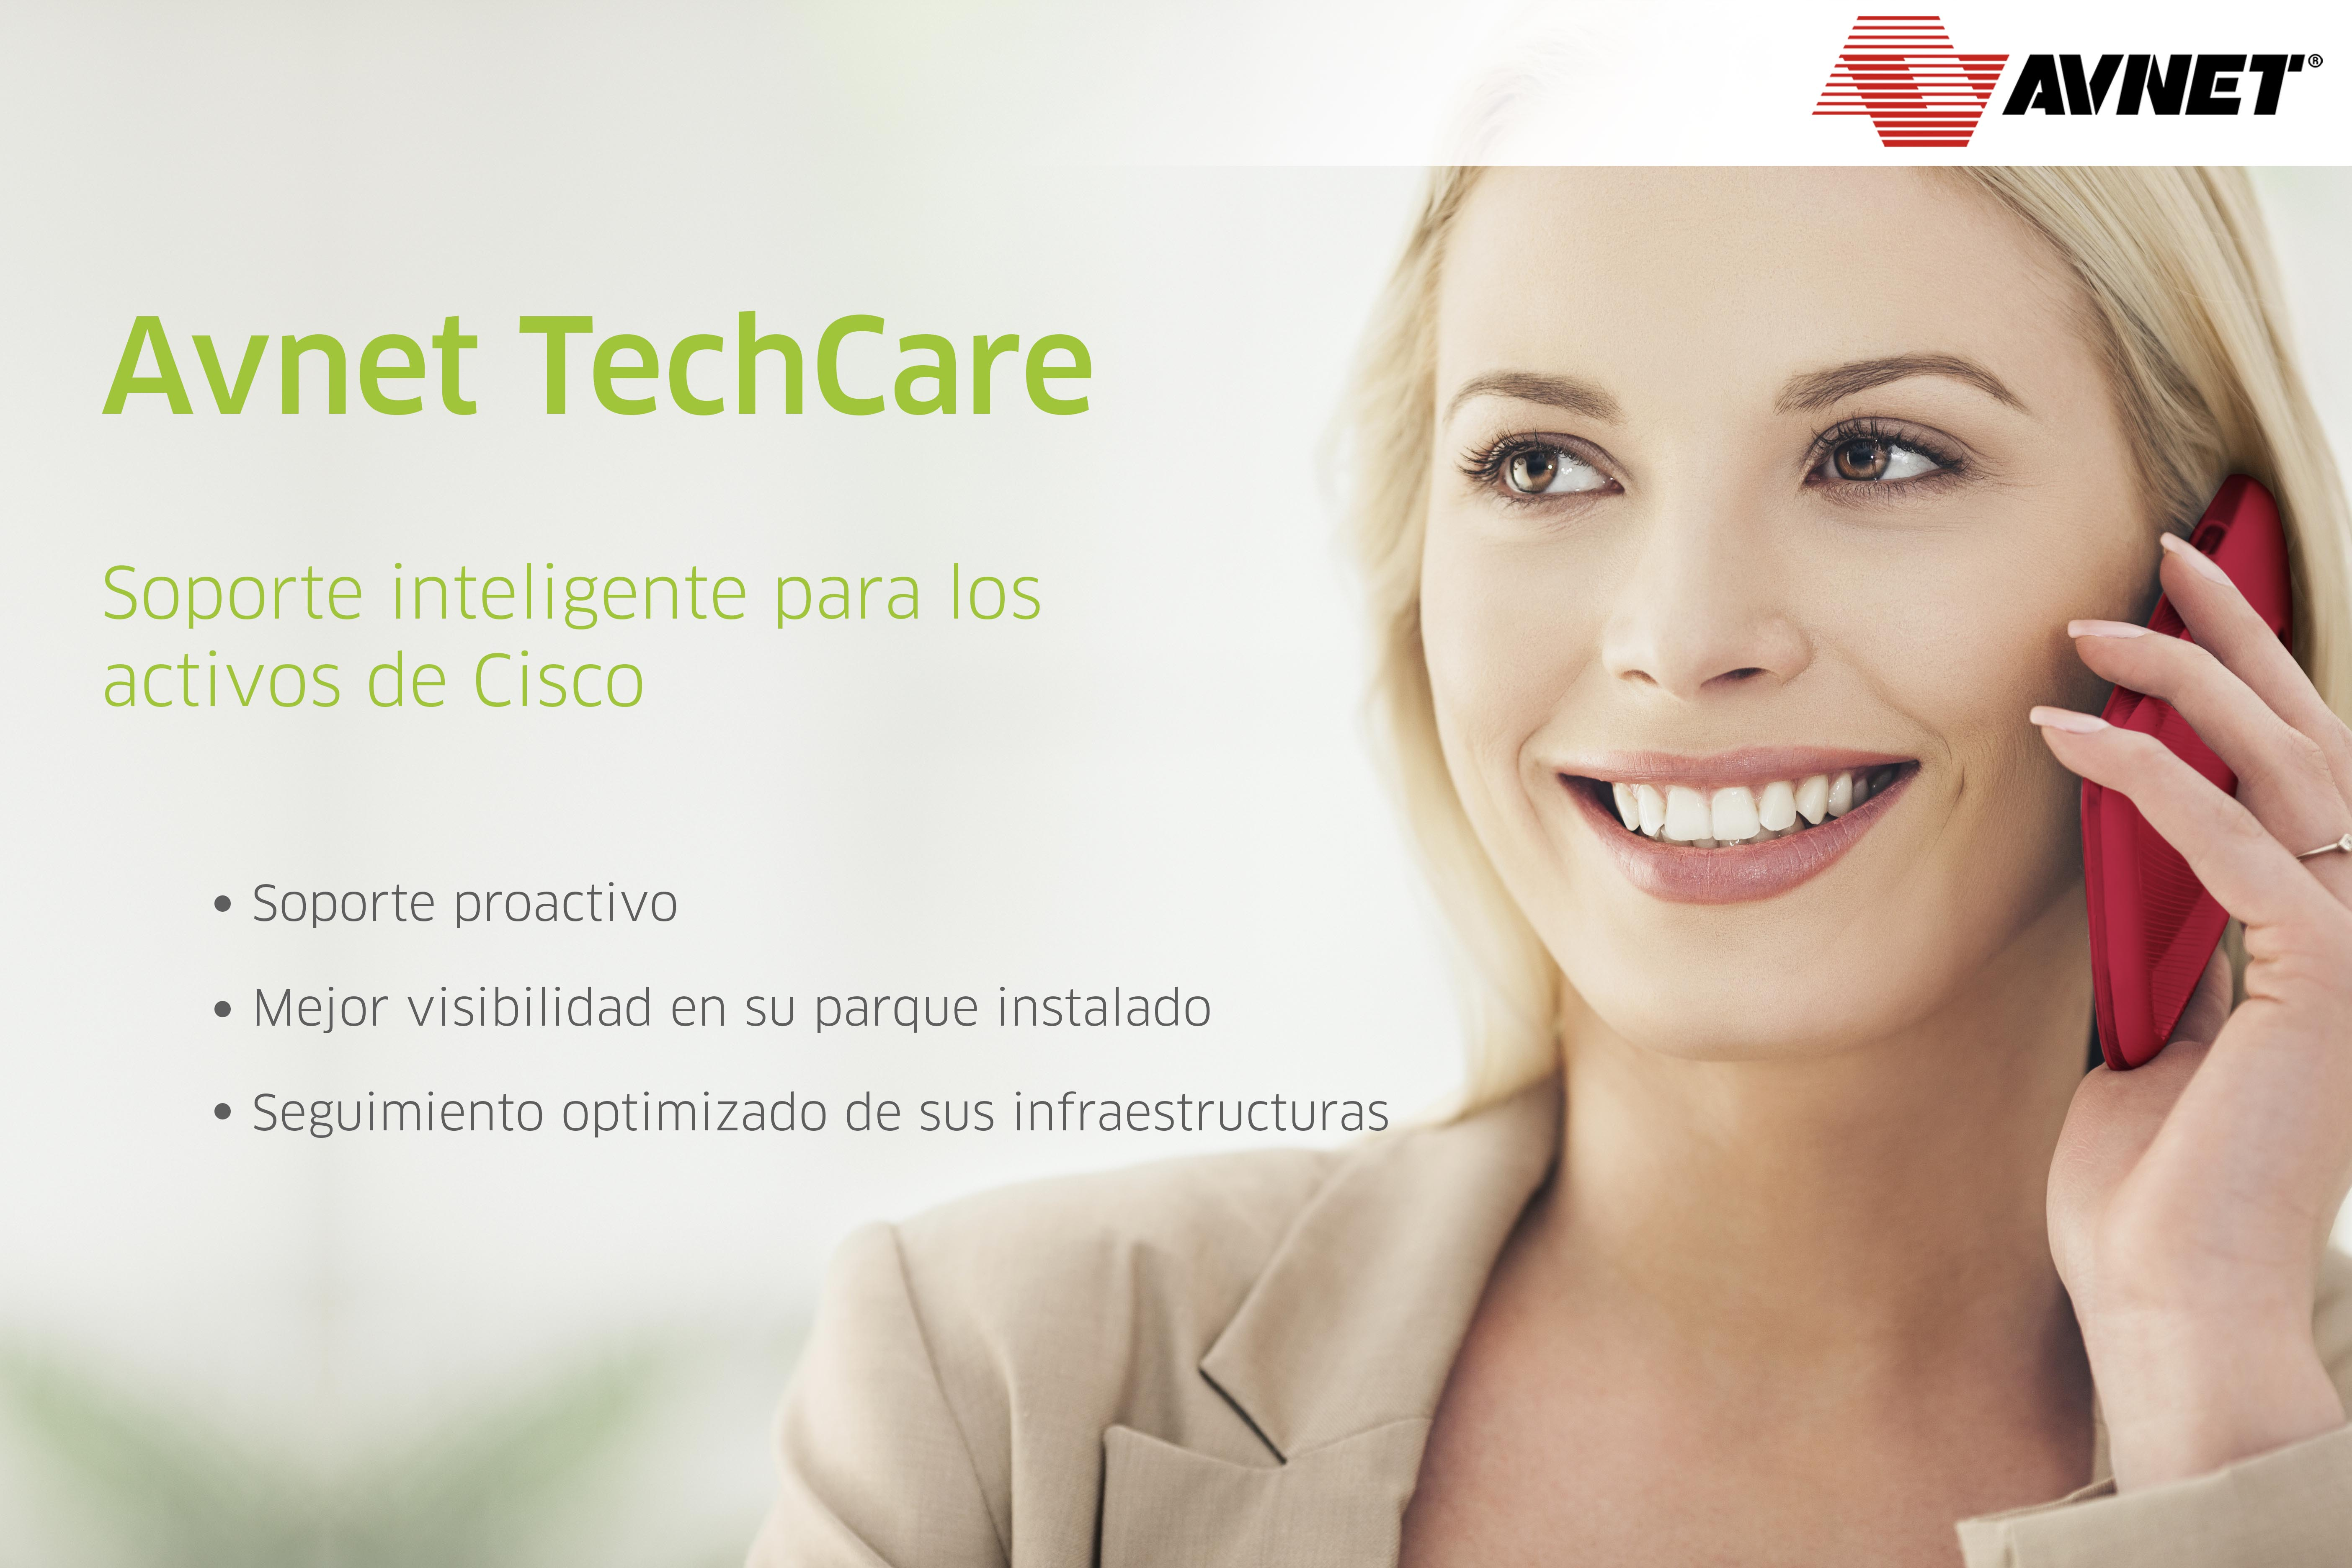 Avnet_TechCare_Cisco